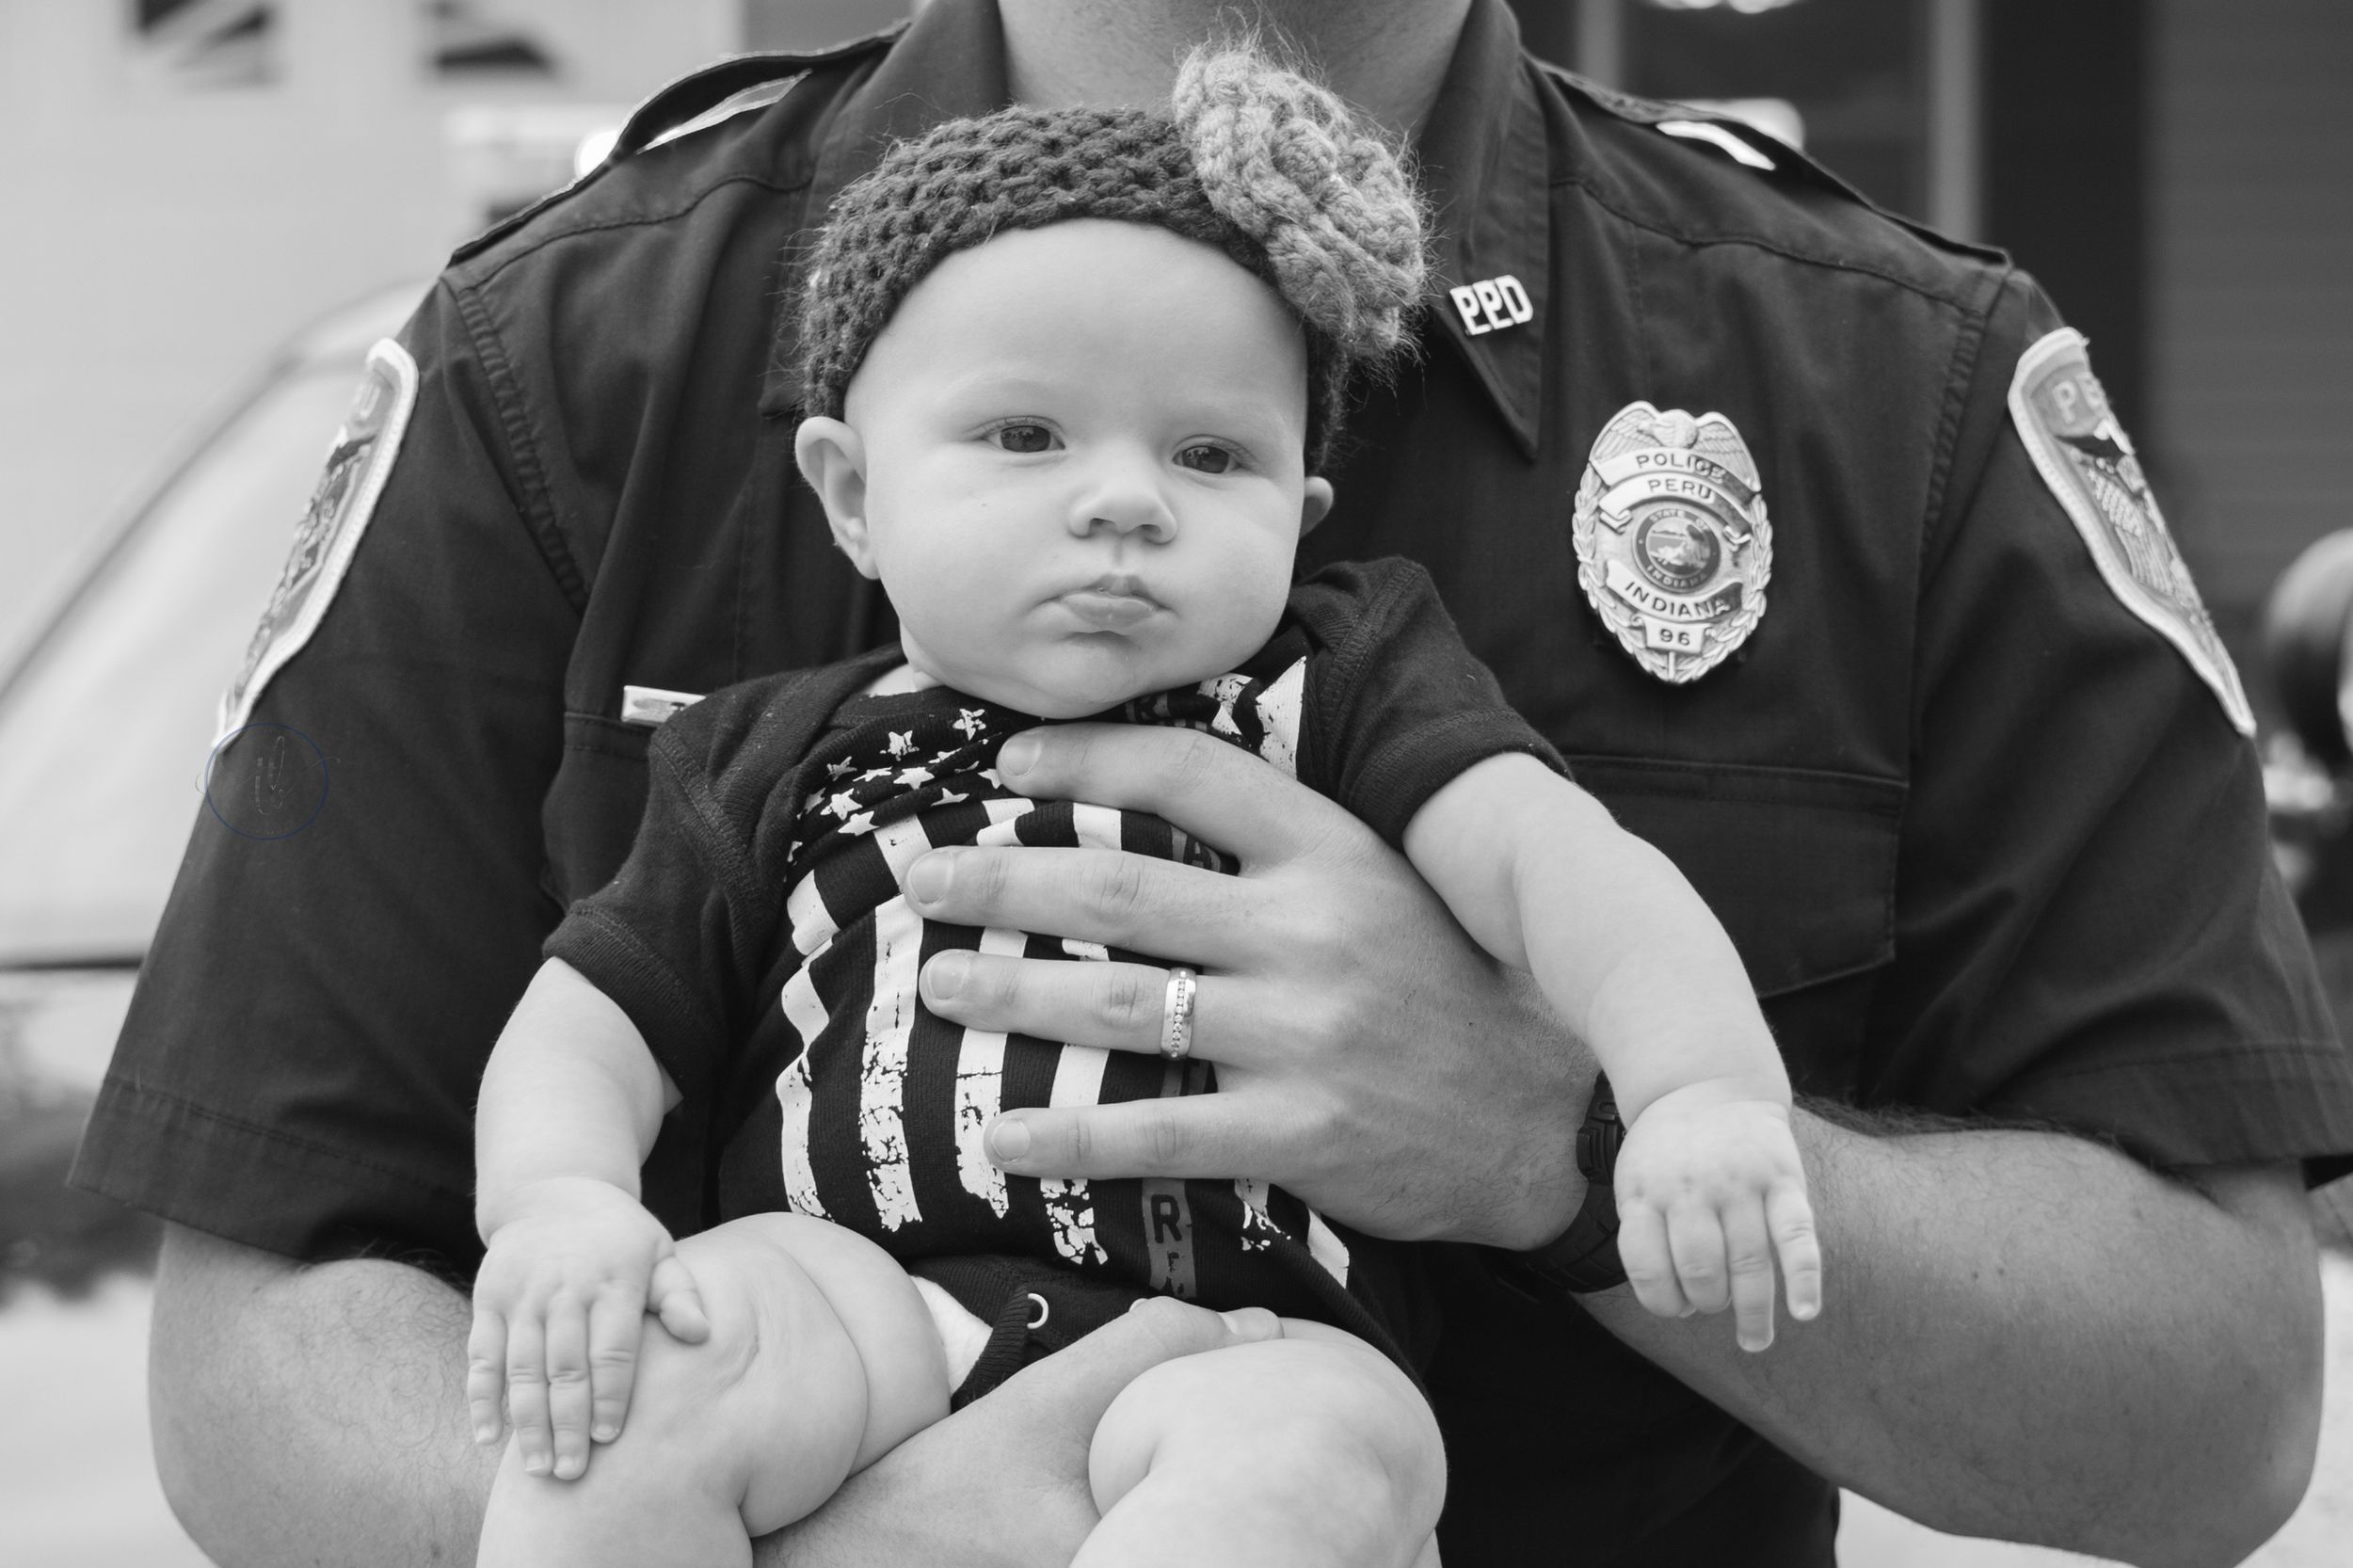 Dad and baby girl in uniform